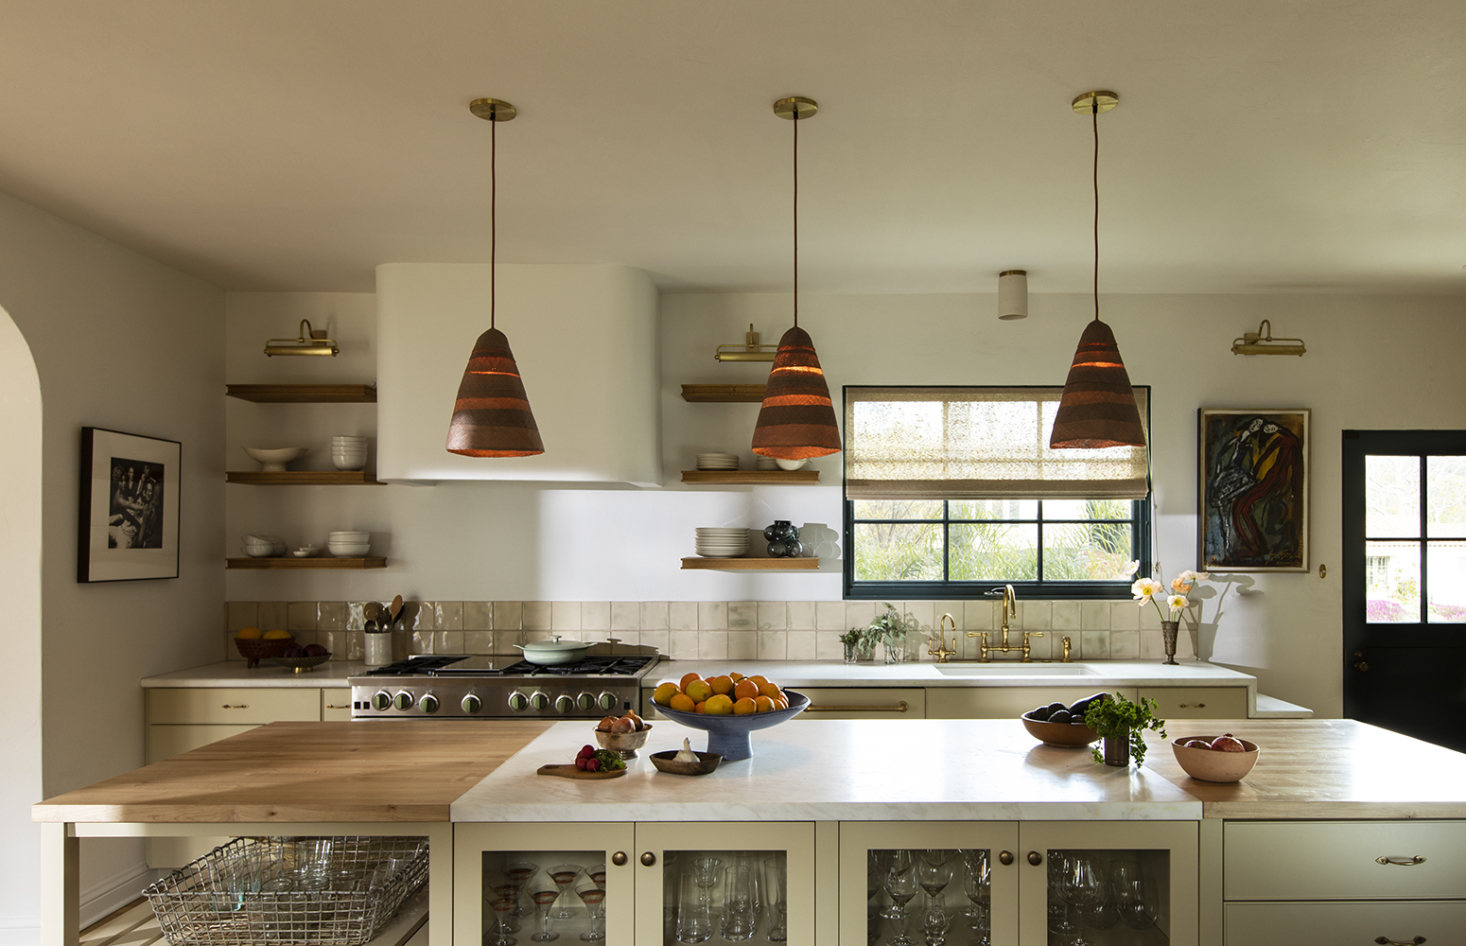 Steal This Look: A Los Angeles Architect's Low Key but Elegant Kitchen